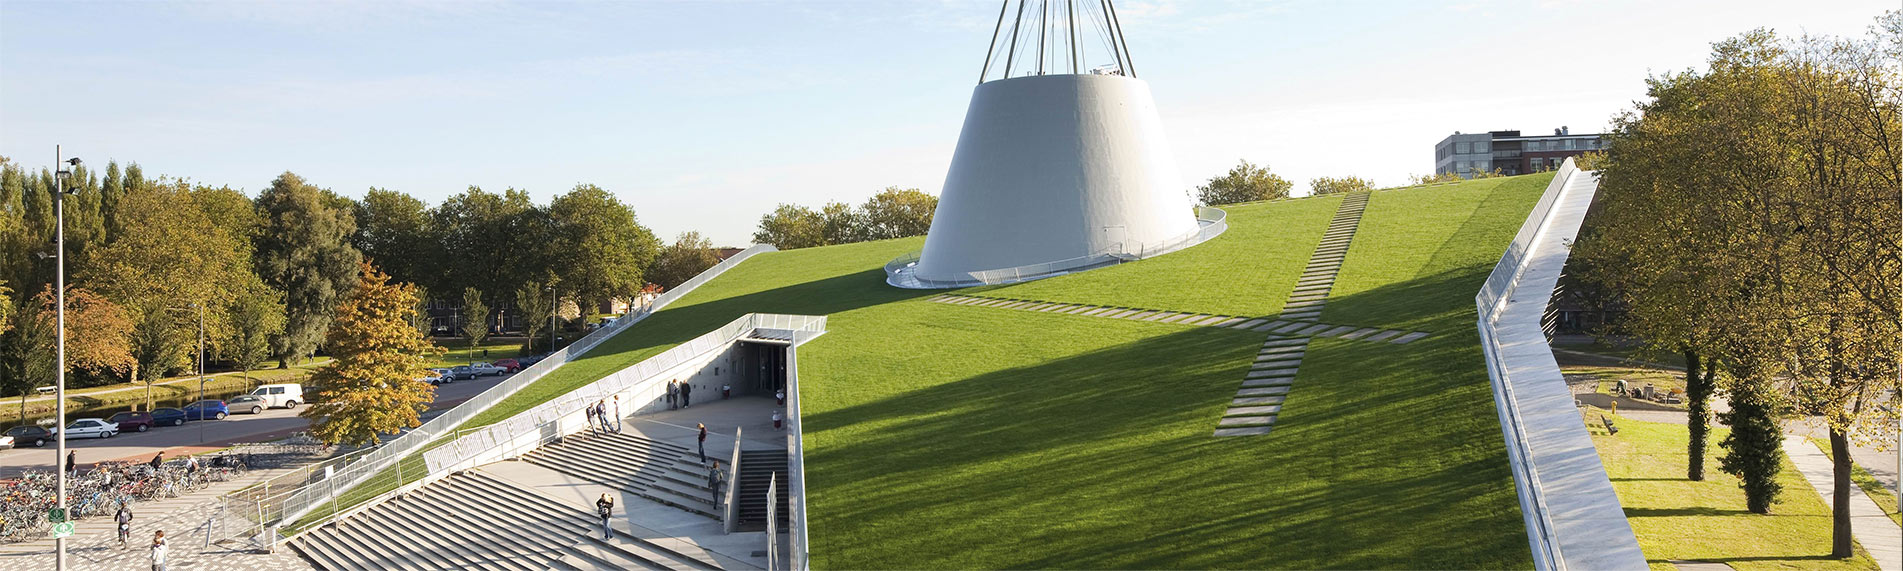 RESITRIX® SKW Full Bond waterproofing membrane used for Delft University